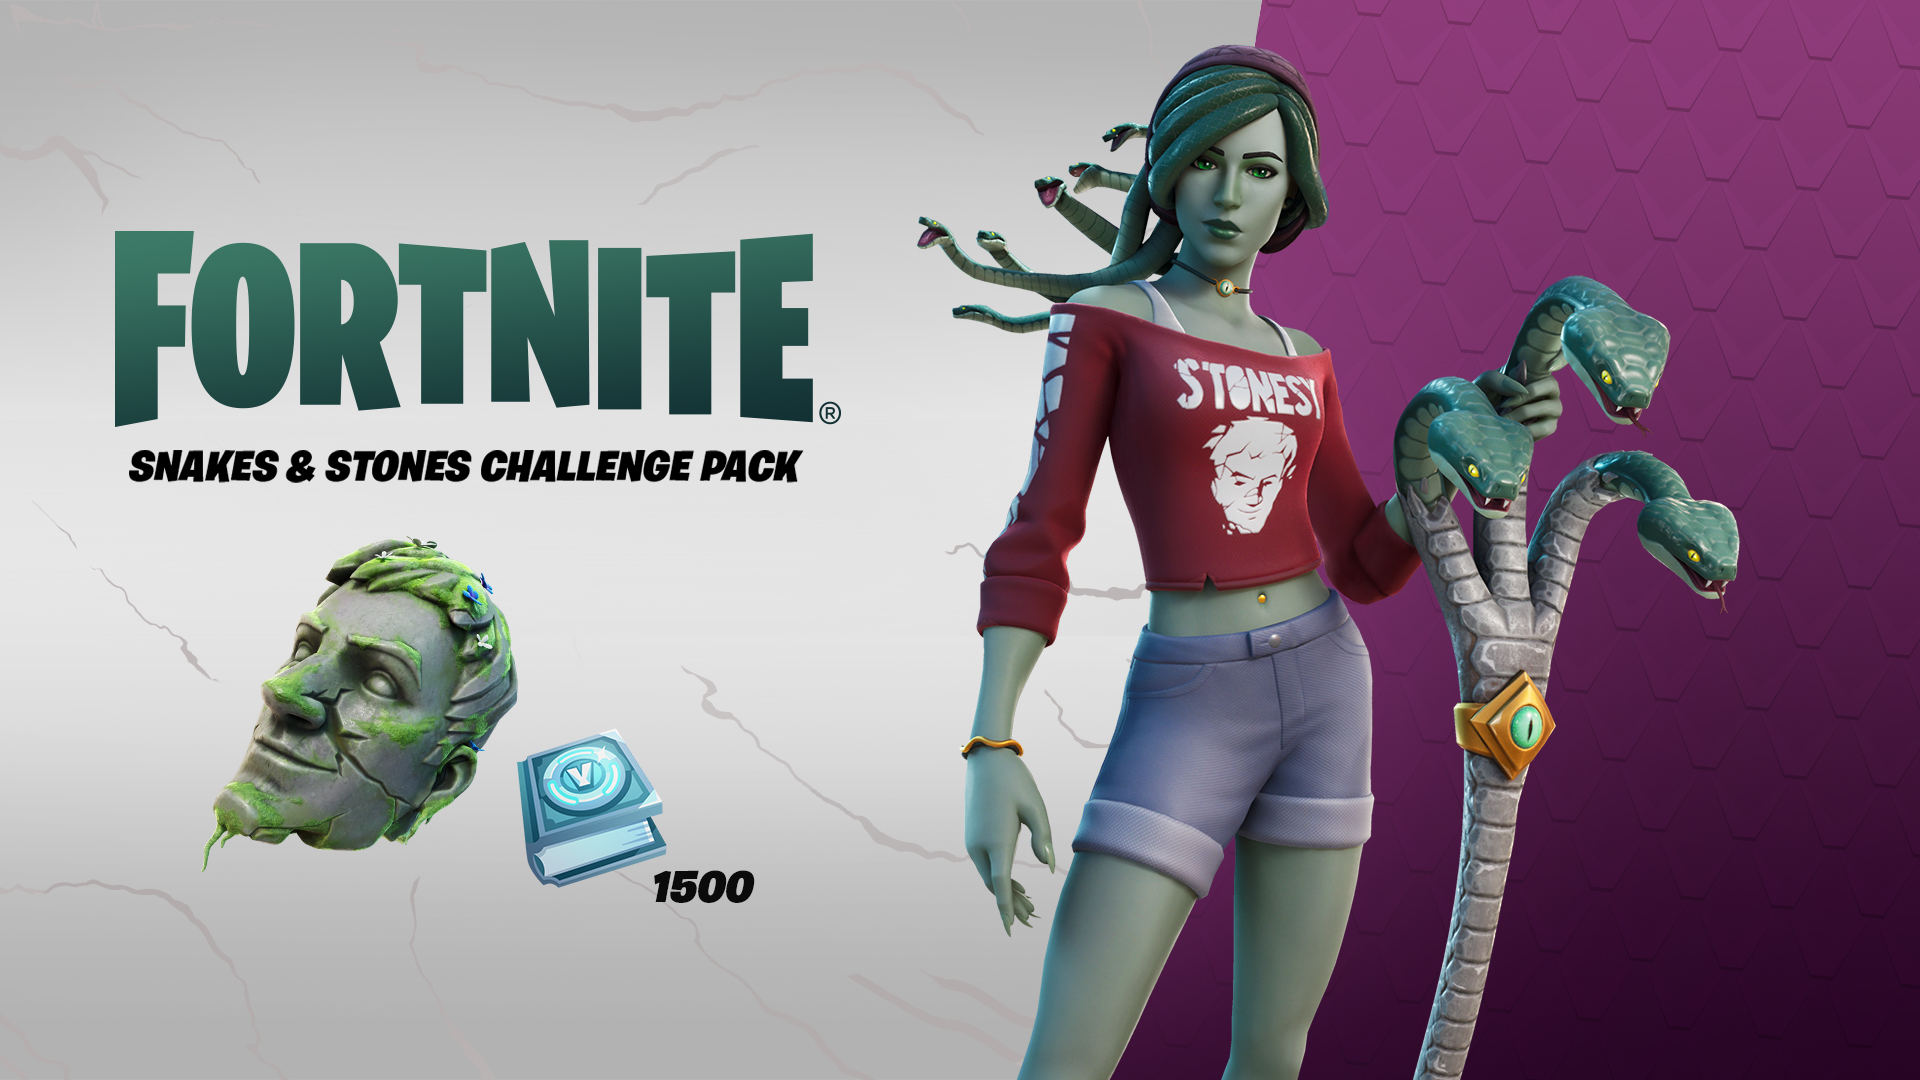 Snakes & Stones Challenge Pack